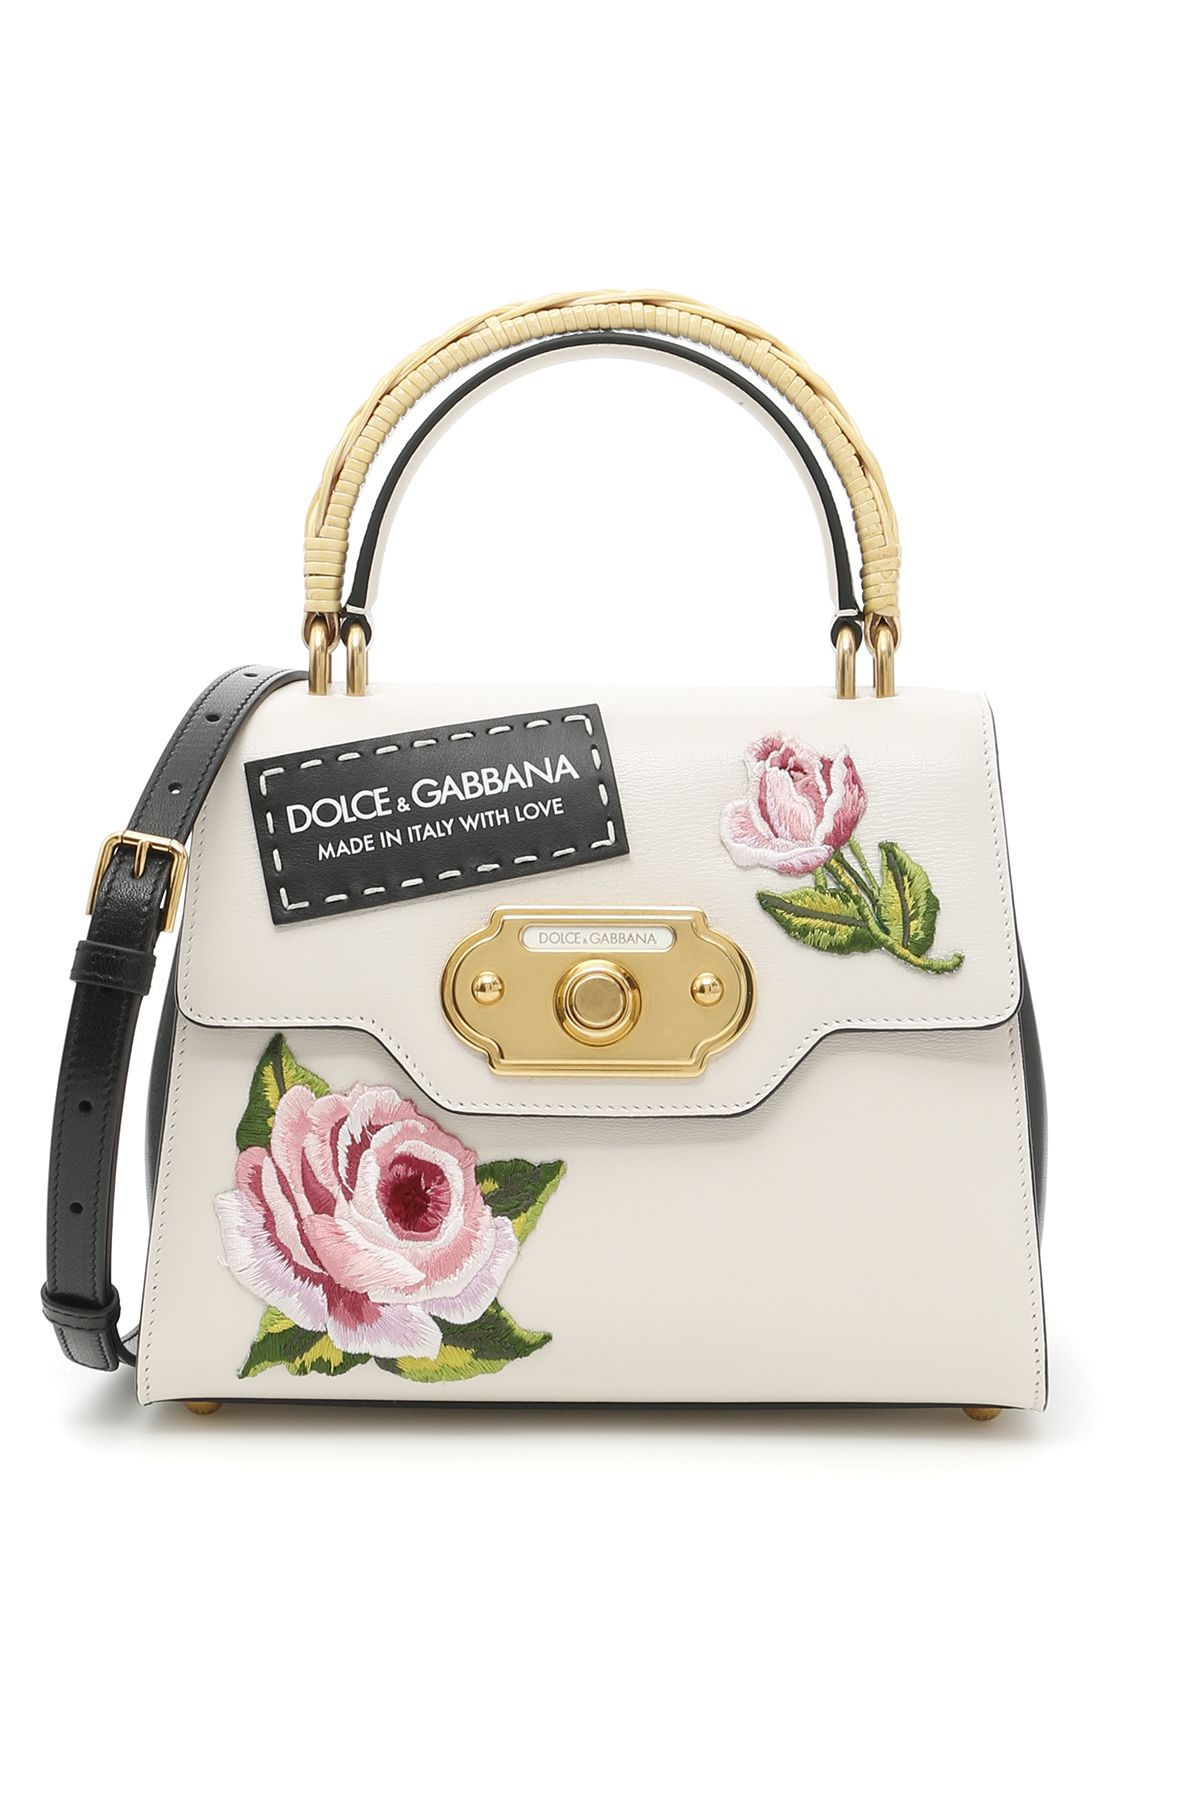 0eabc68d06e DOLCE & GABBANA WELCOME BAG. #dolcegabbana #bags #shoulder bags ...